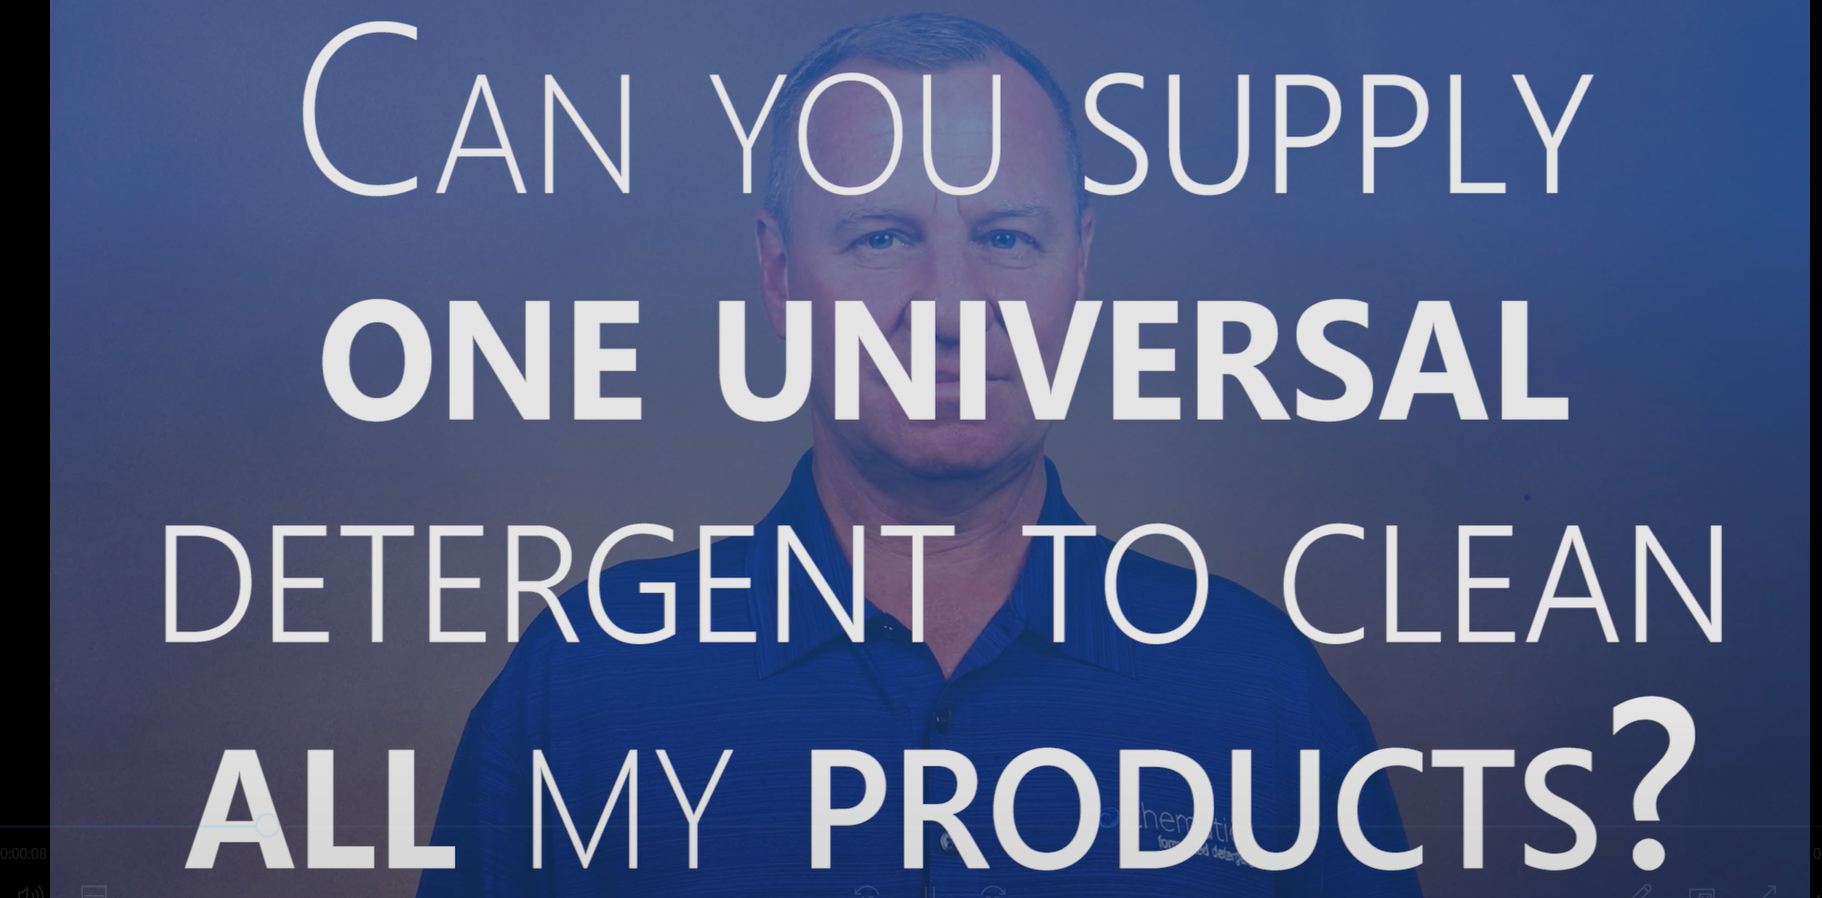 Can You Supply One Universal Detergent to Clean All of My Products?